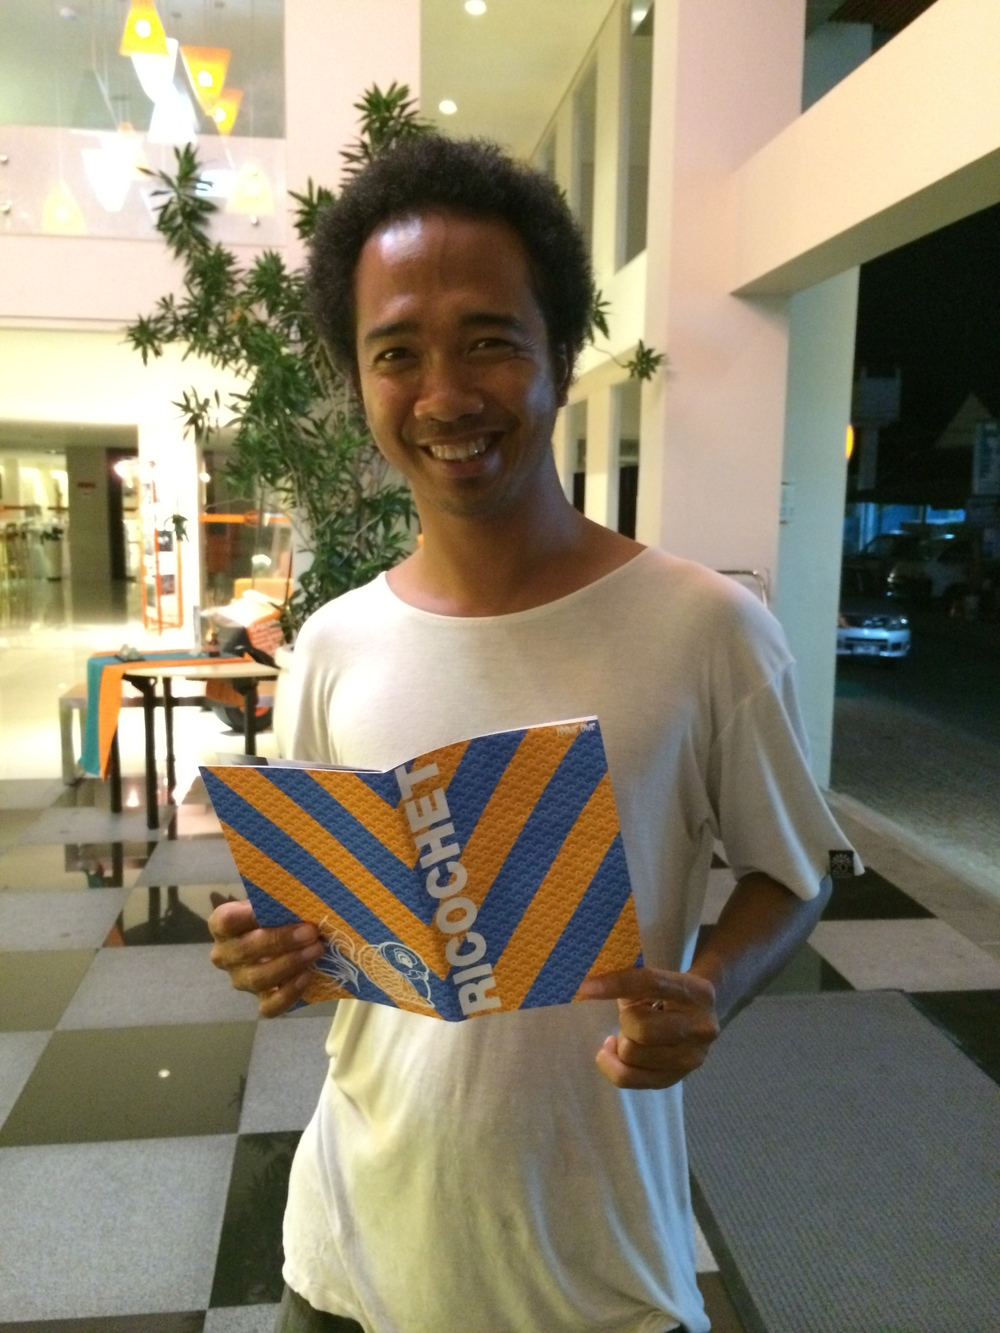 Made with his copy in Bali, Indonesia